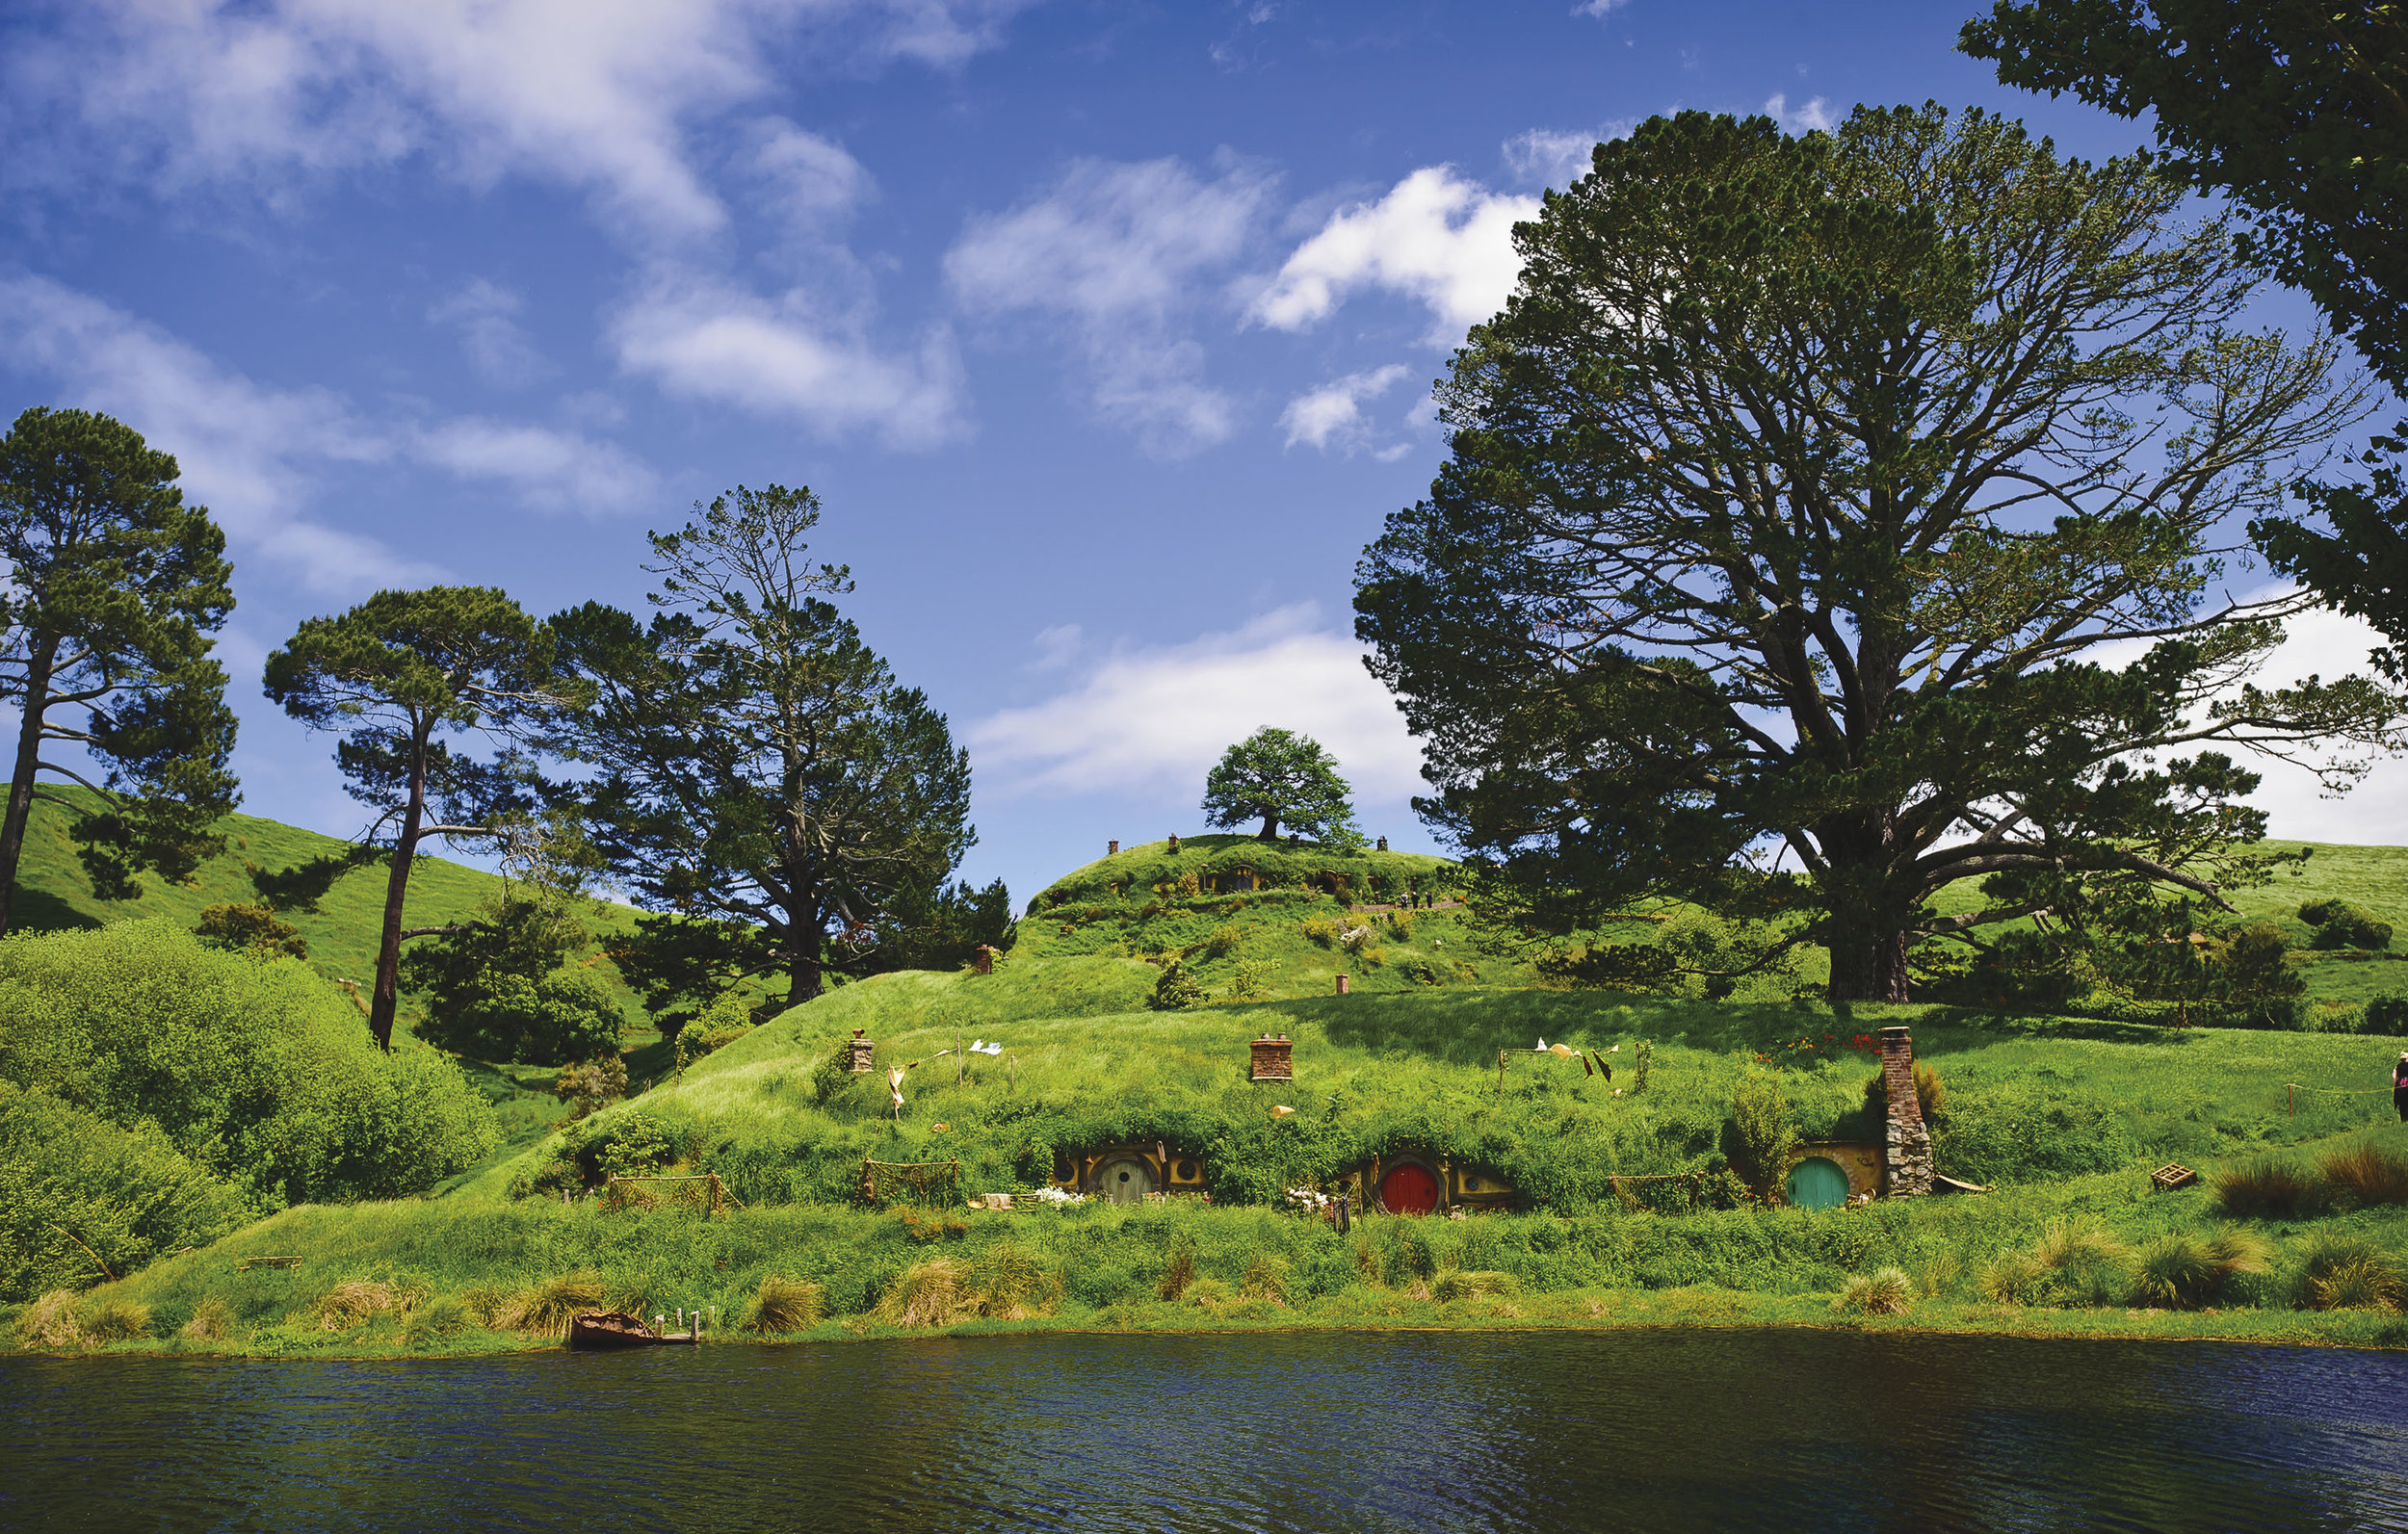 Hobbiton - Huge party tree on the right and the little 'fake' tree in the middle on the hill.jpg